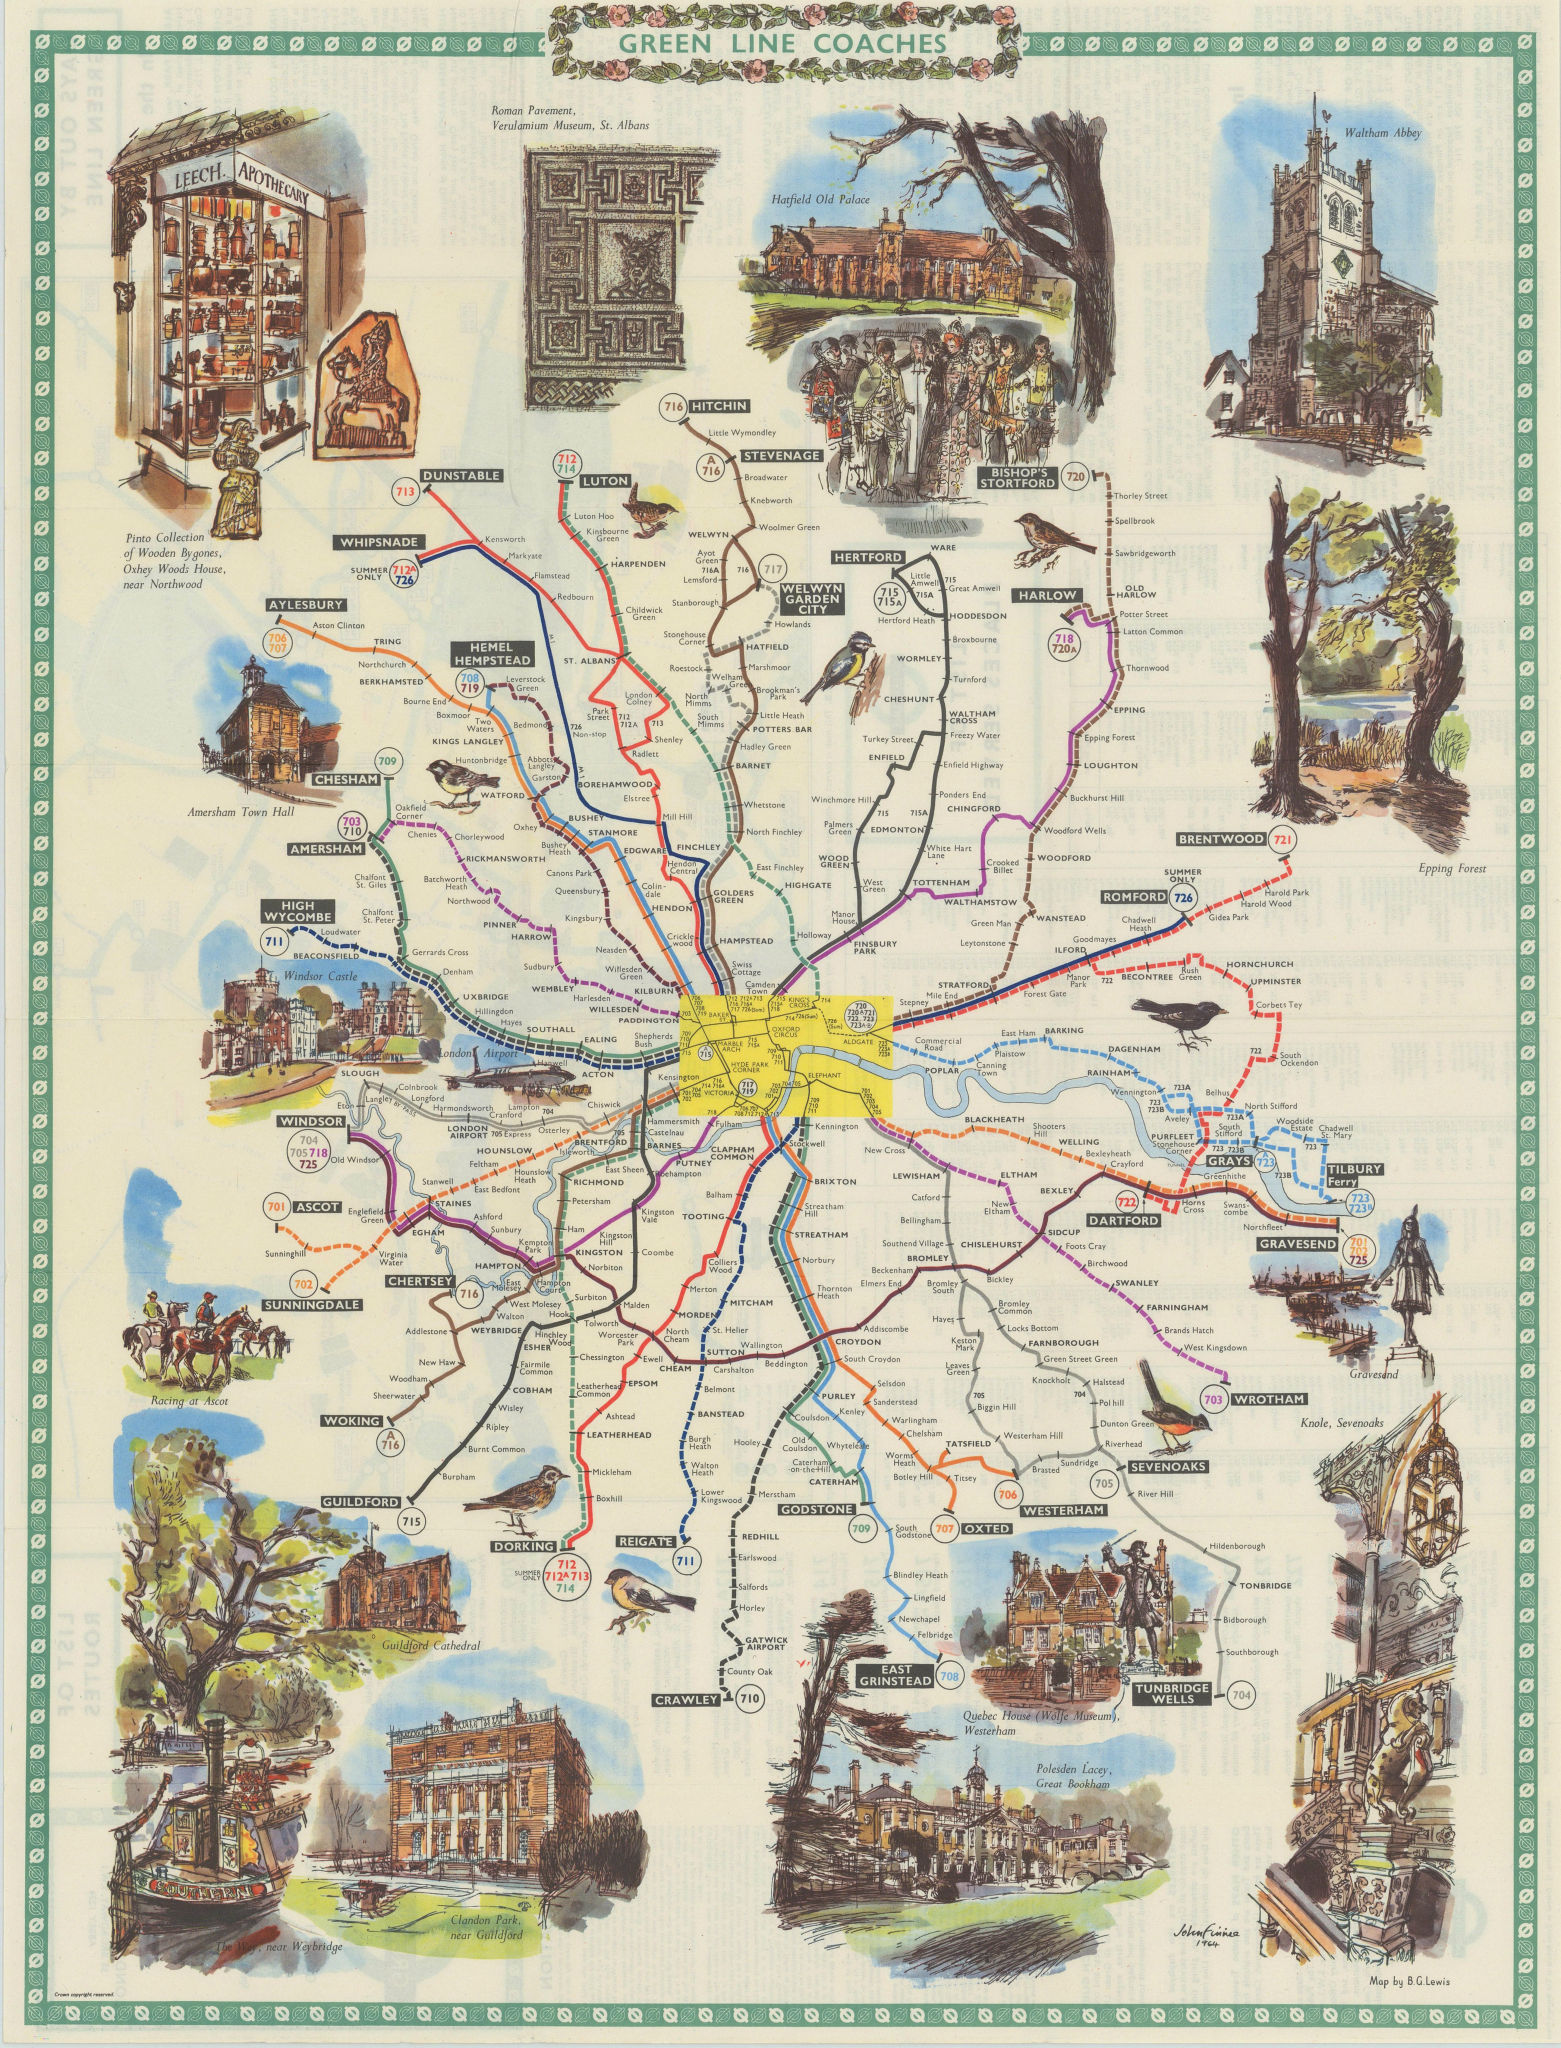 London Transport Green Line Coach Routes. LEWIS #1 1964 old vintage map chart